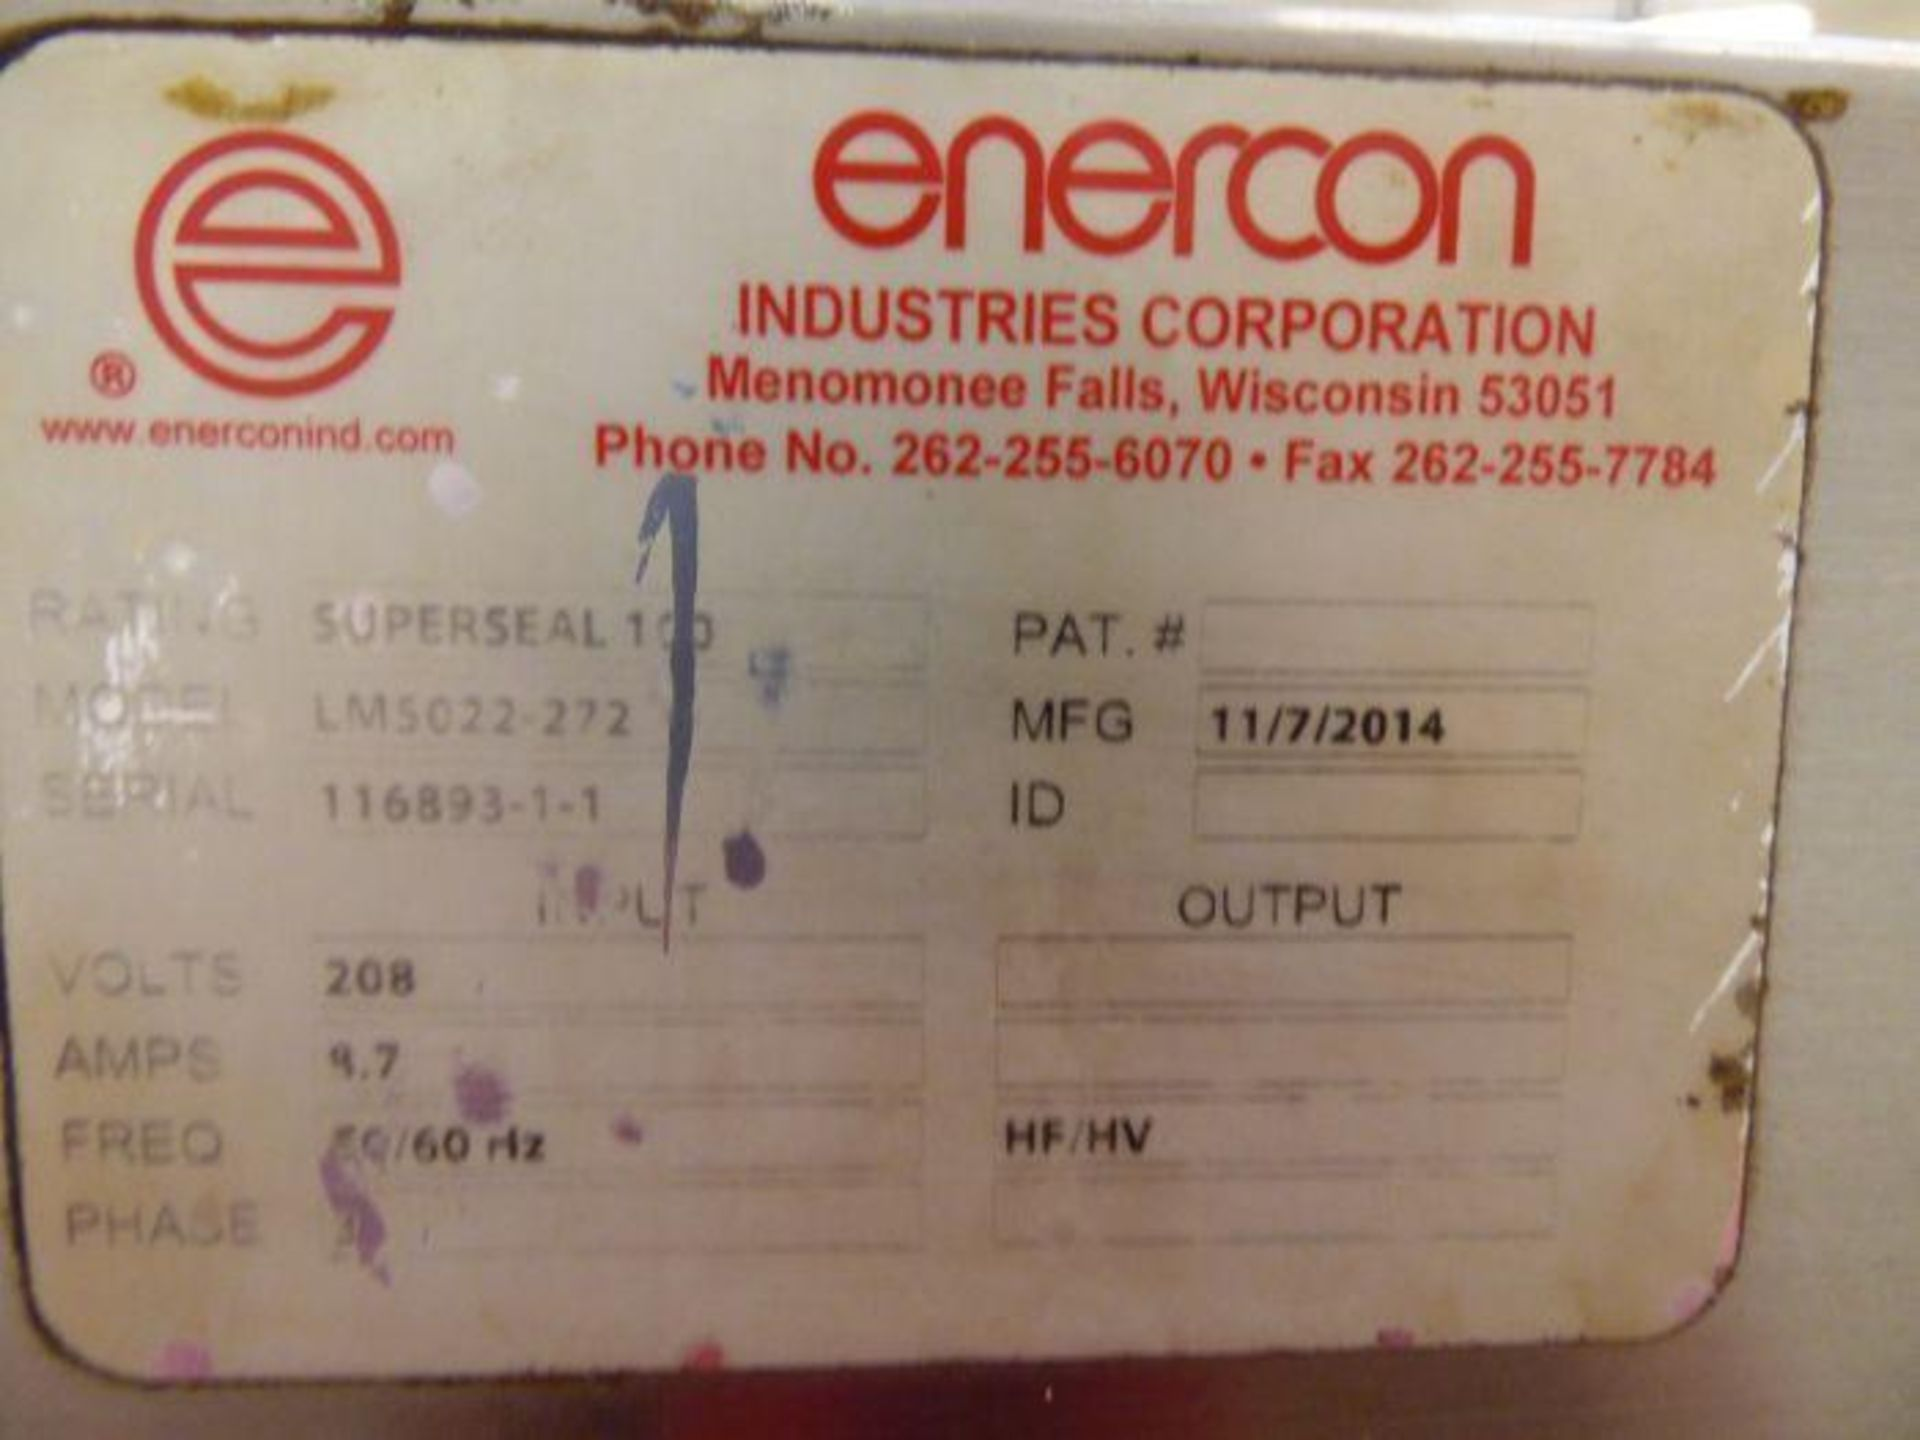 Enercon Super Seal Touch 100 with Spare Parts - Image 6 of 17